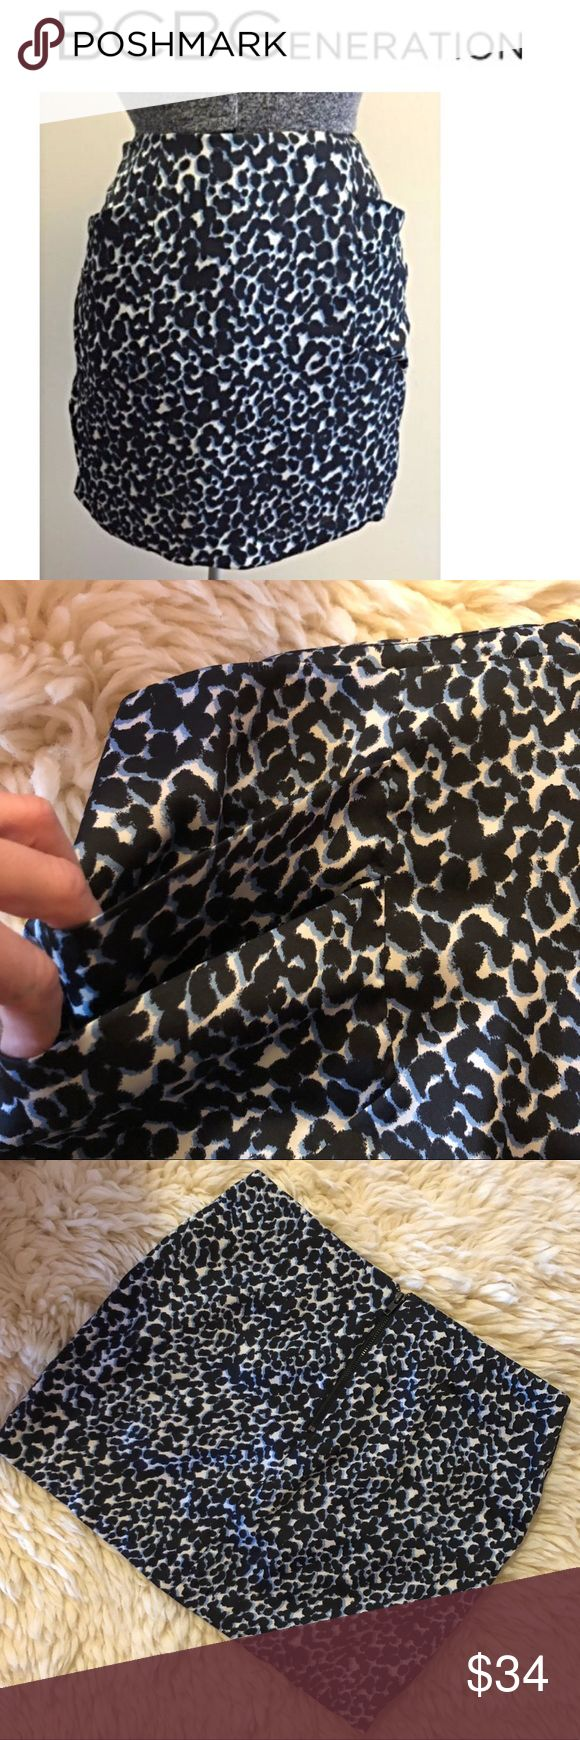 """BCBGeneration Blue Leopard Skirt White background with navy and lighter blue leopard print 🔹silky lightweight feel  🔹100% polyester  🔹lined 🔹Black exposed zipper on back  🔹double pockets on front  🔹size 8  Waist across 16"""" ; length top-bottom: 15""""  🔹condition NWOT BCBGeneration Skirts Mini"""